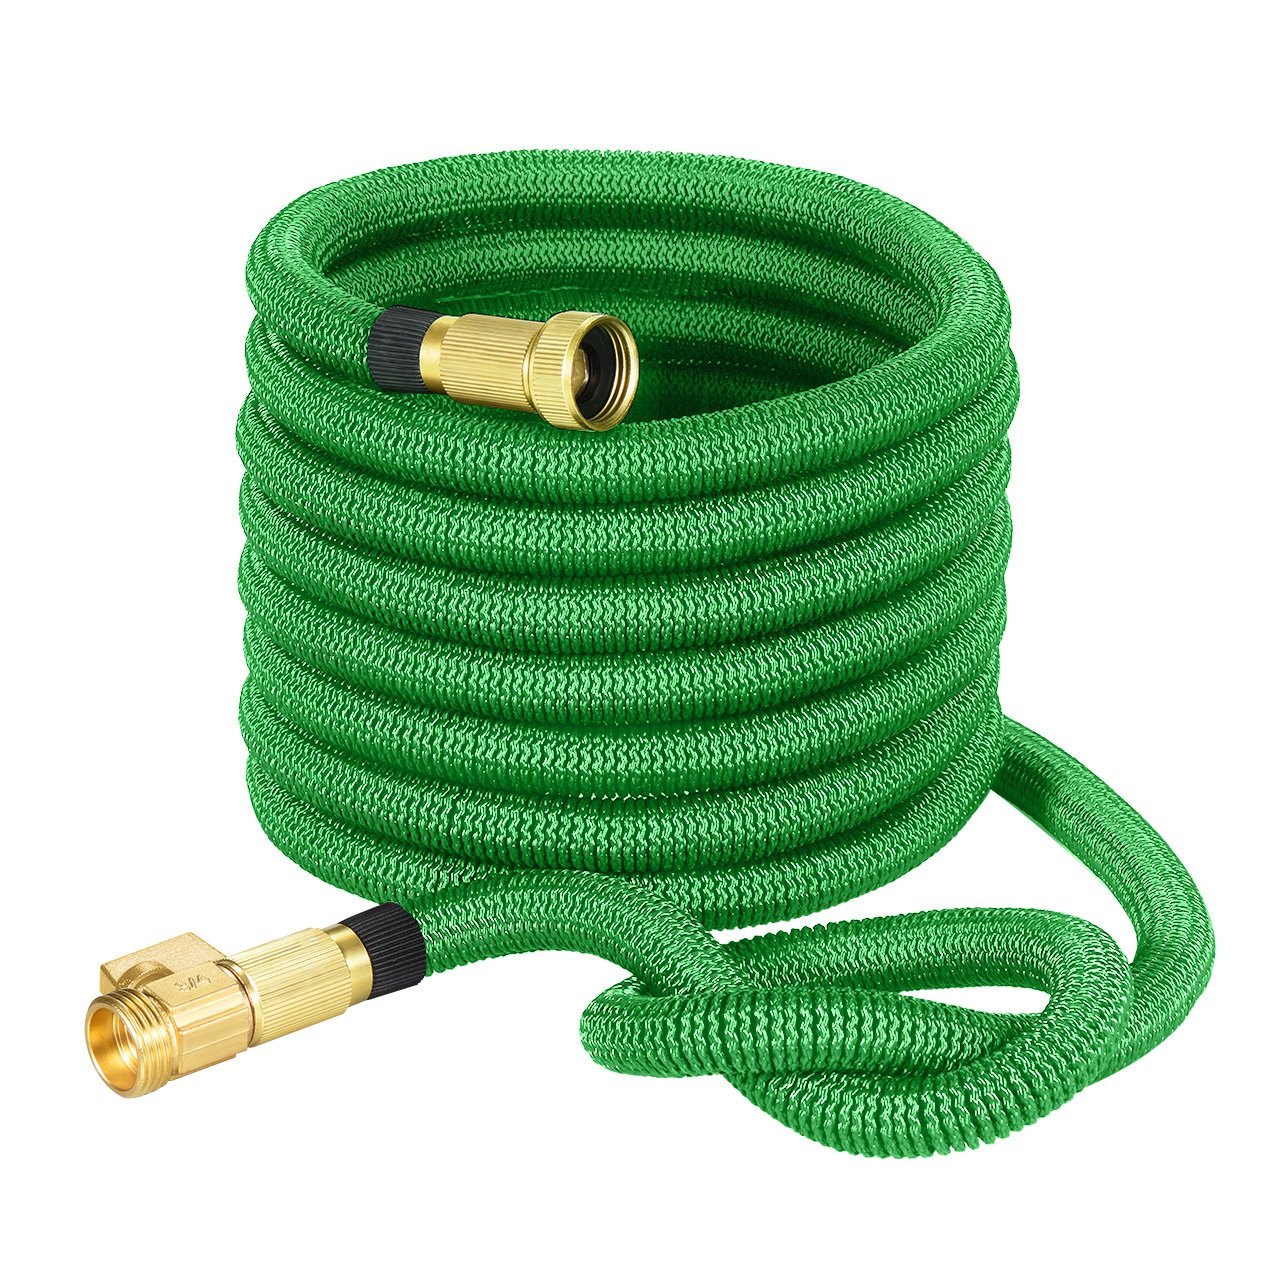 TopRay 50ft Garden Hose, Expandable Water Hose with Double Latex Core, 3/4'' Solid Brass Fittings & Extra Strength Fabric, Lightweight but More Durable, Free Storage Sack Gift Included